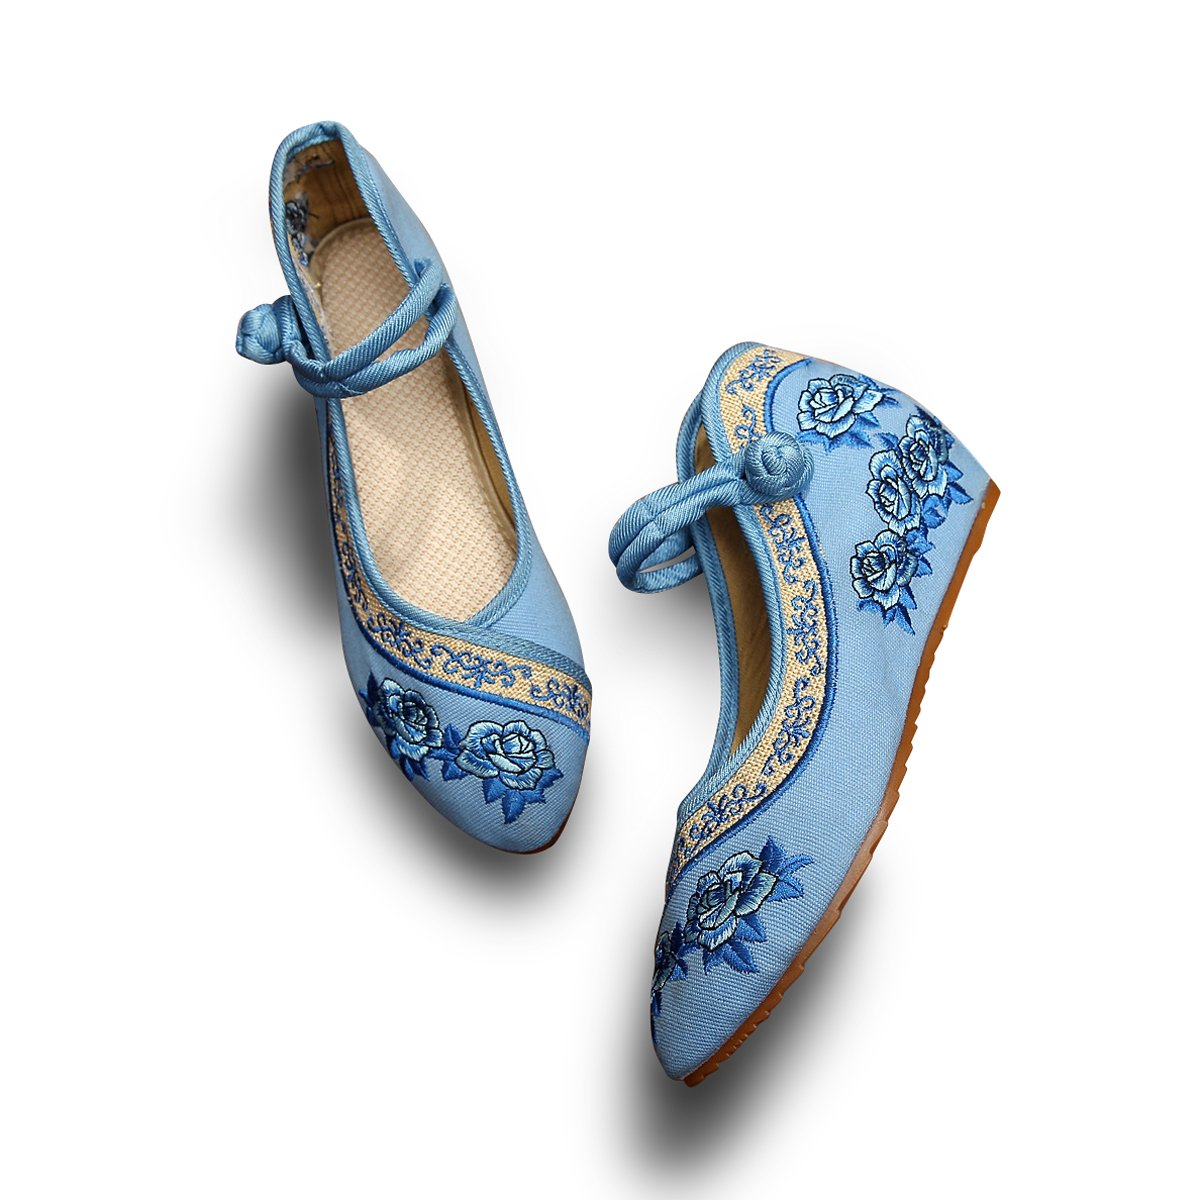 Veowalk Rose Embroidered Womens Pointed Toe Cotton Flat Platforms Shoes Elegant Casual Canvas Ballets